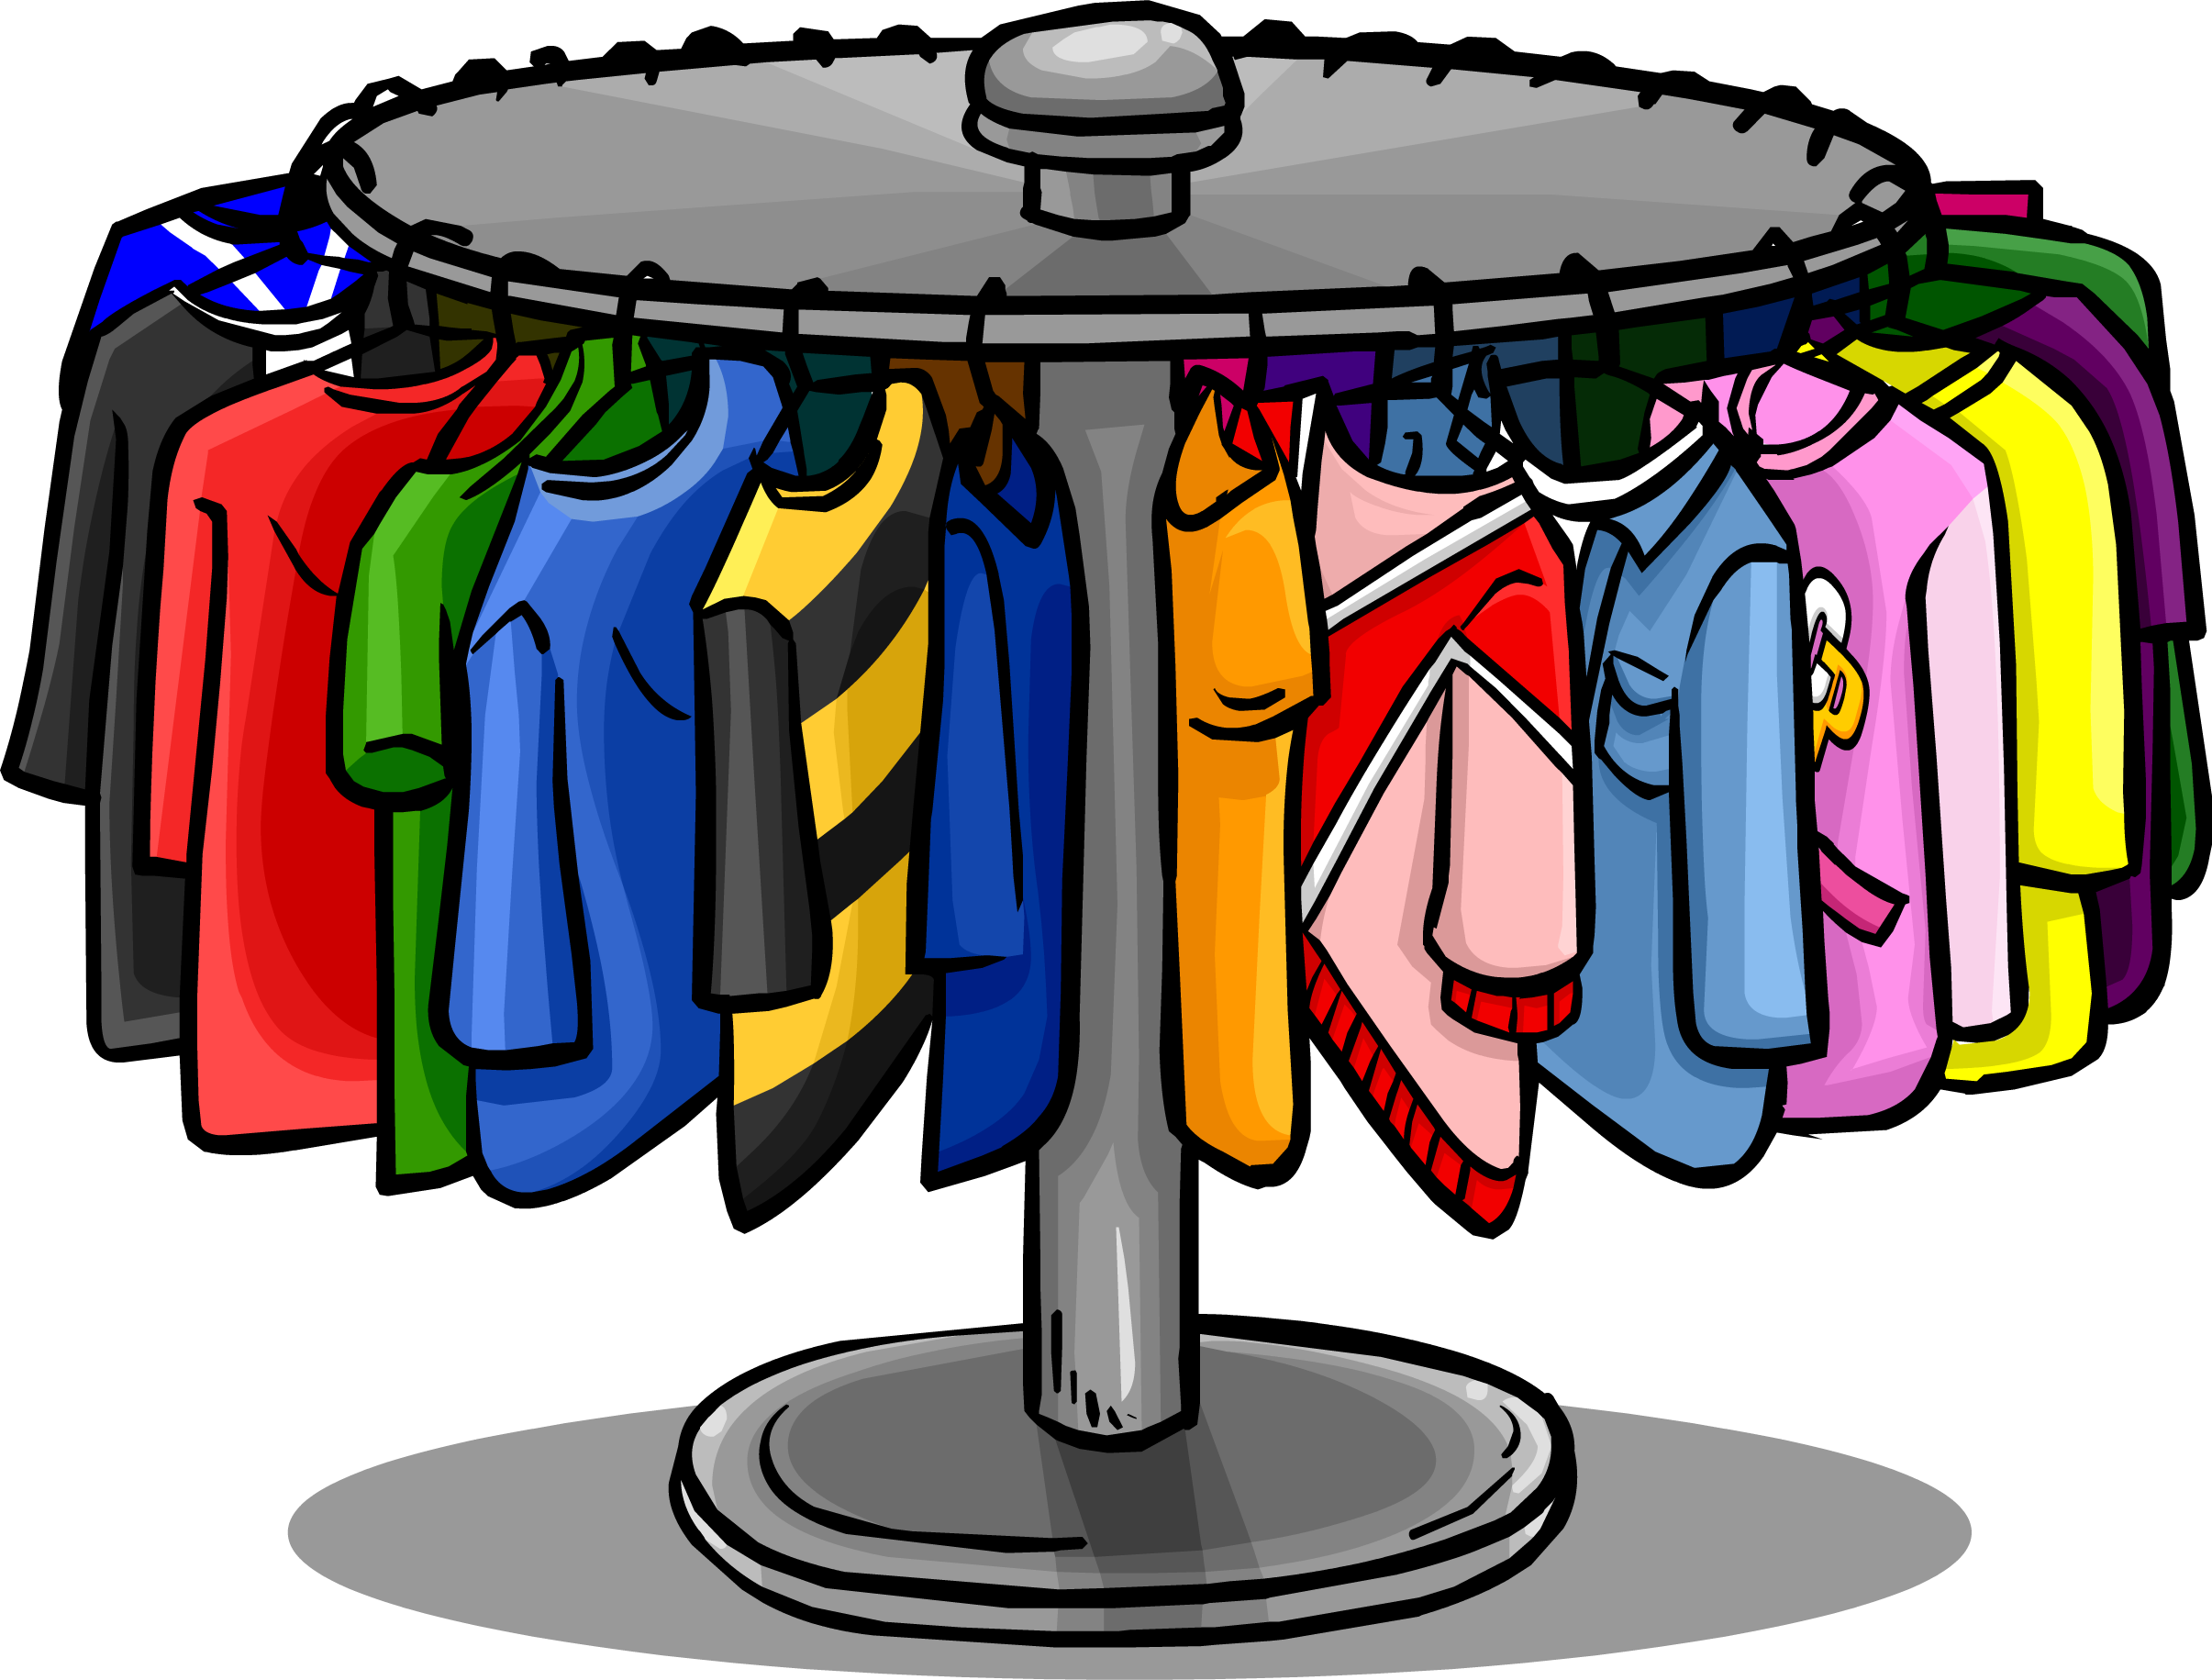 Clothes_Rack_furniture_icon_ID_633